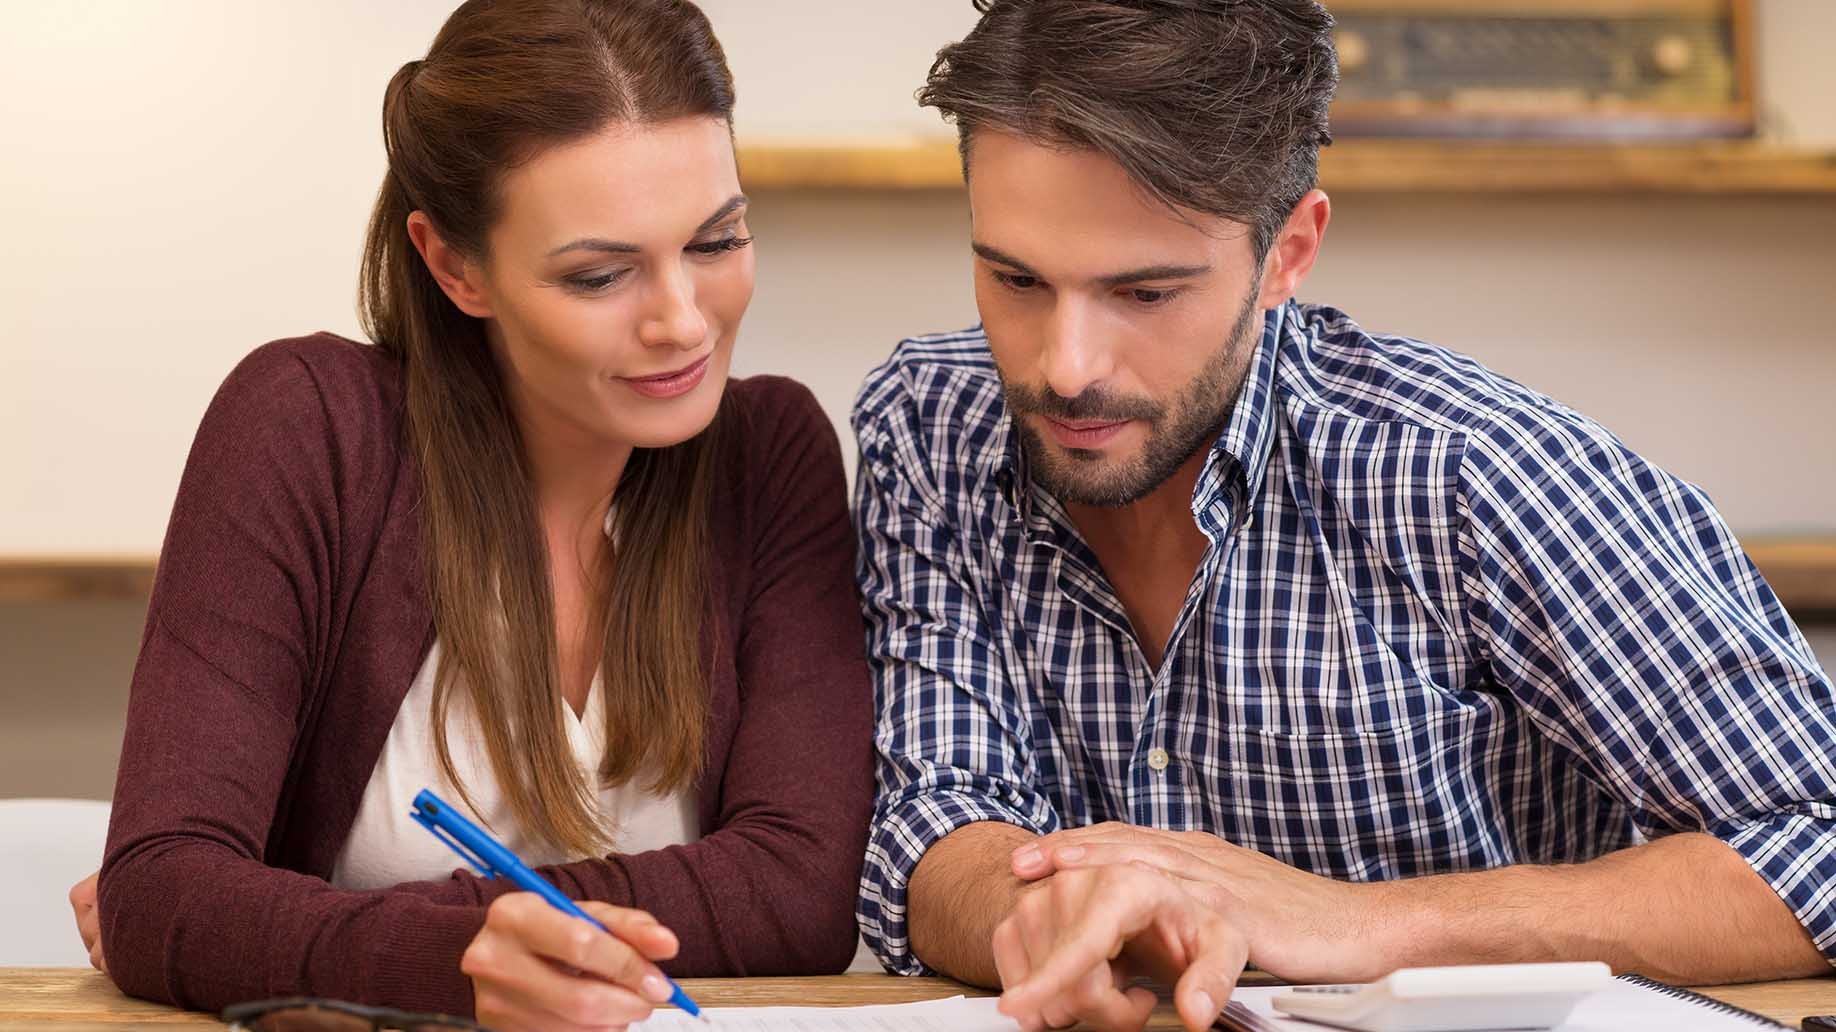 couple analyzing bills discussing their expenses and incomes